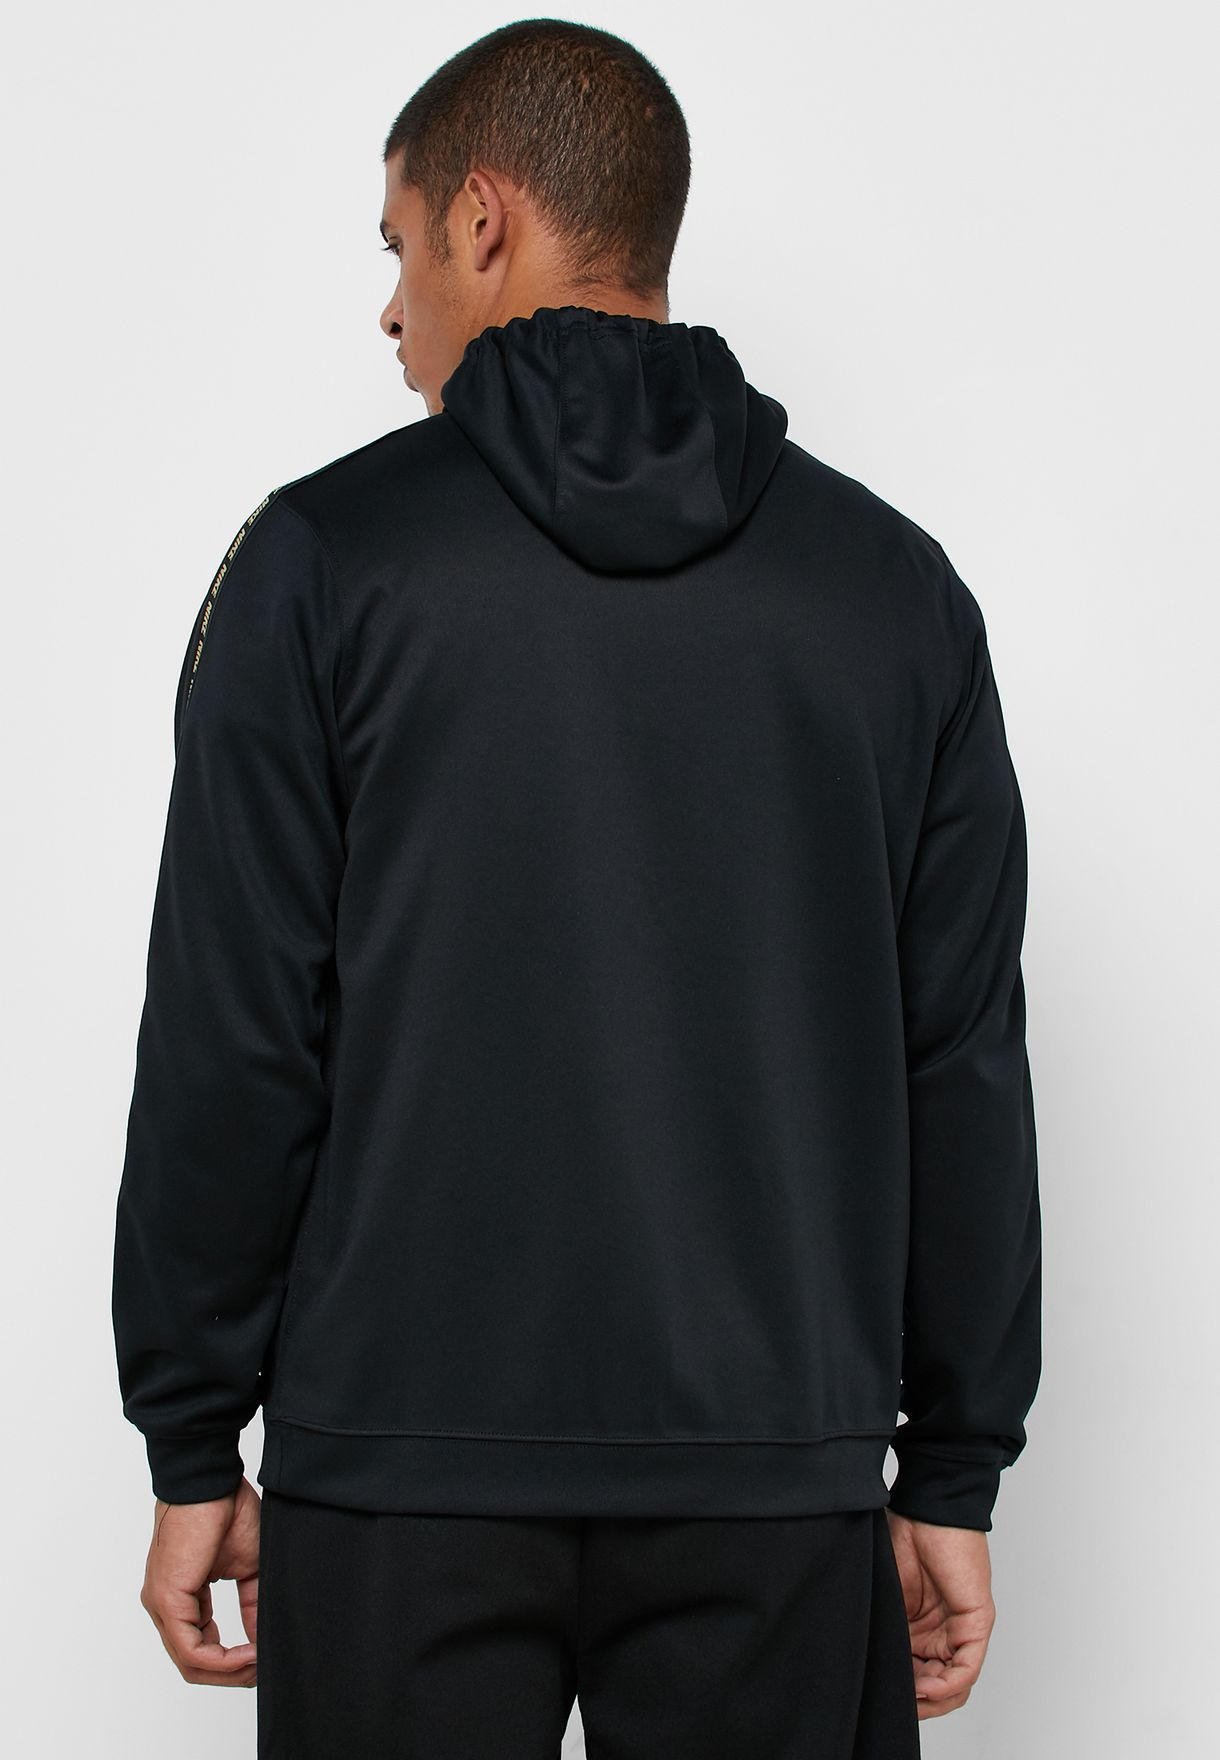 Hoodies Sports & Outdoor Clothing Nike Childrens B NSW